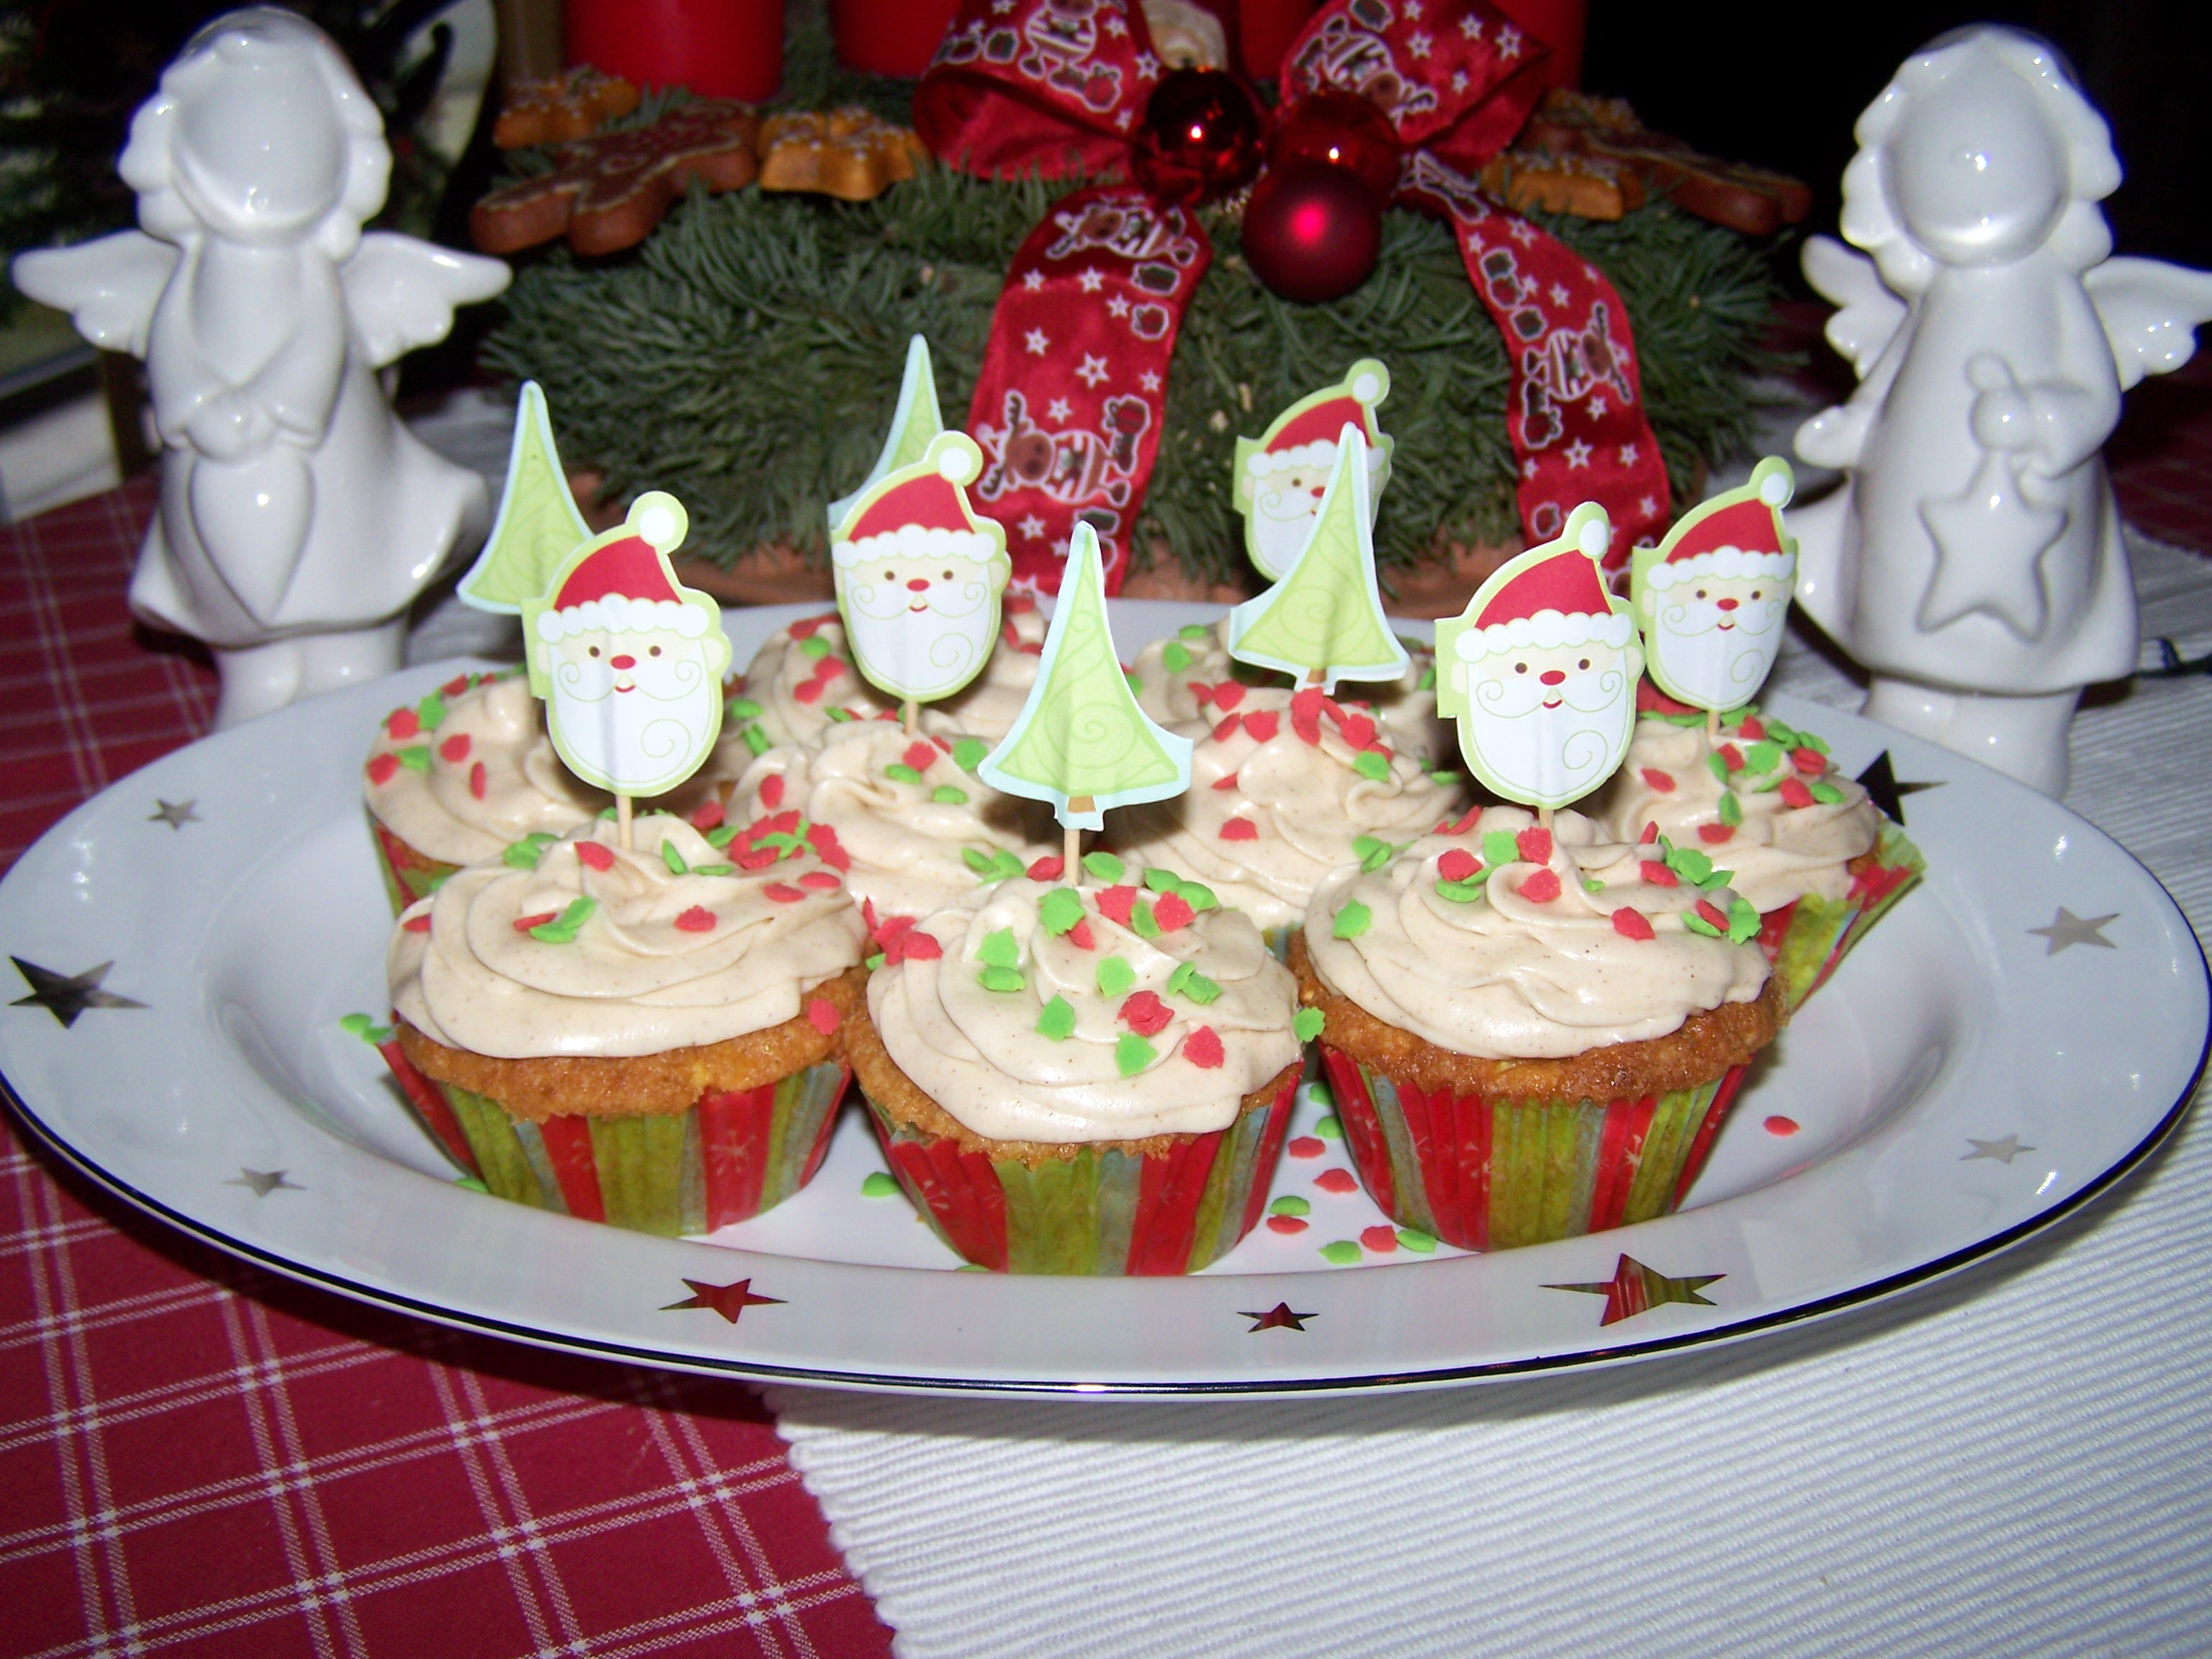 3 advent apfel zimt cupcakes mit zimtfrischk sefrosting. Black Bedroom Furniture Sets. Home Design Ideas